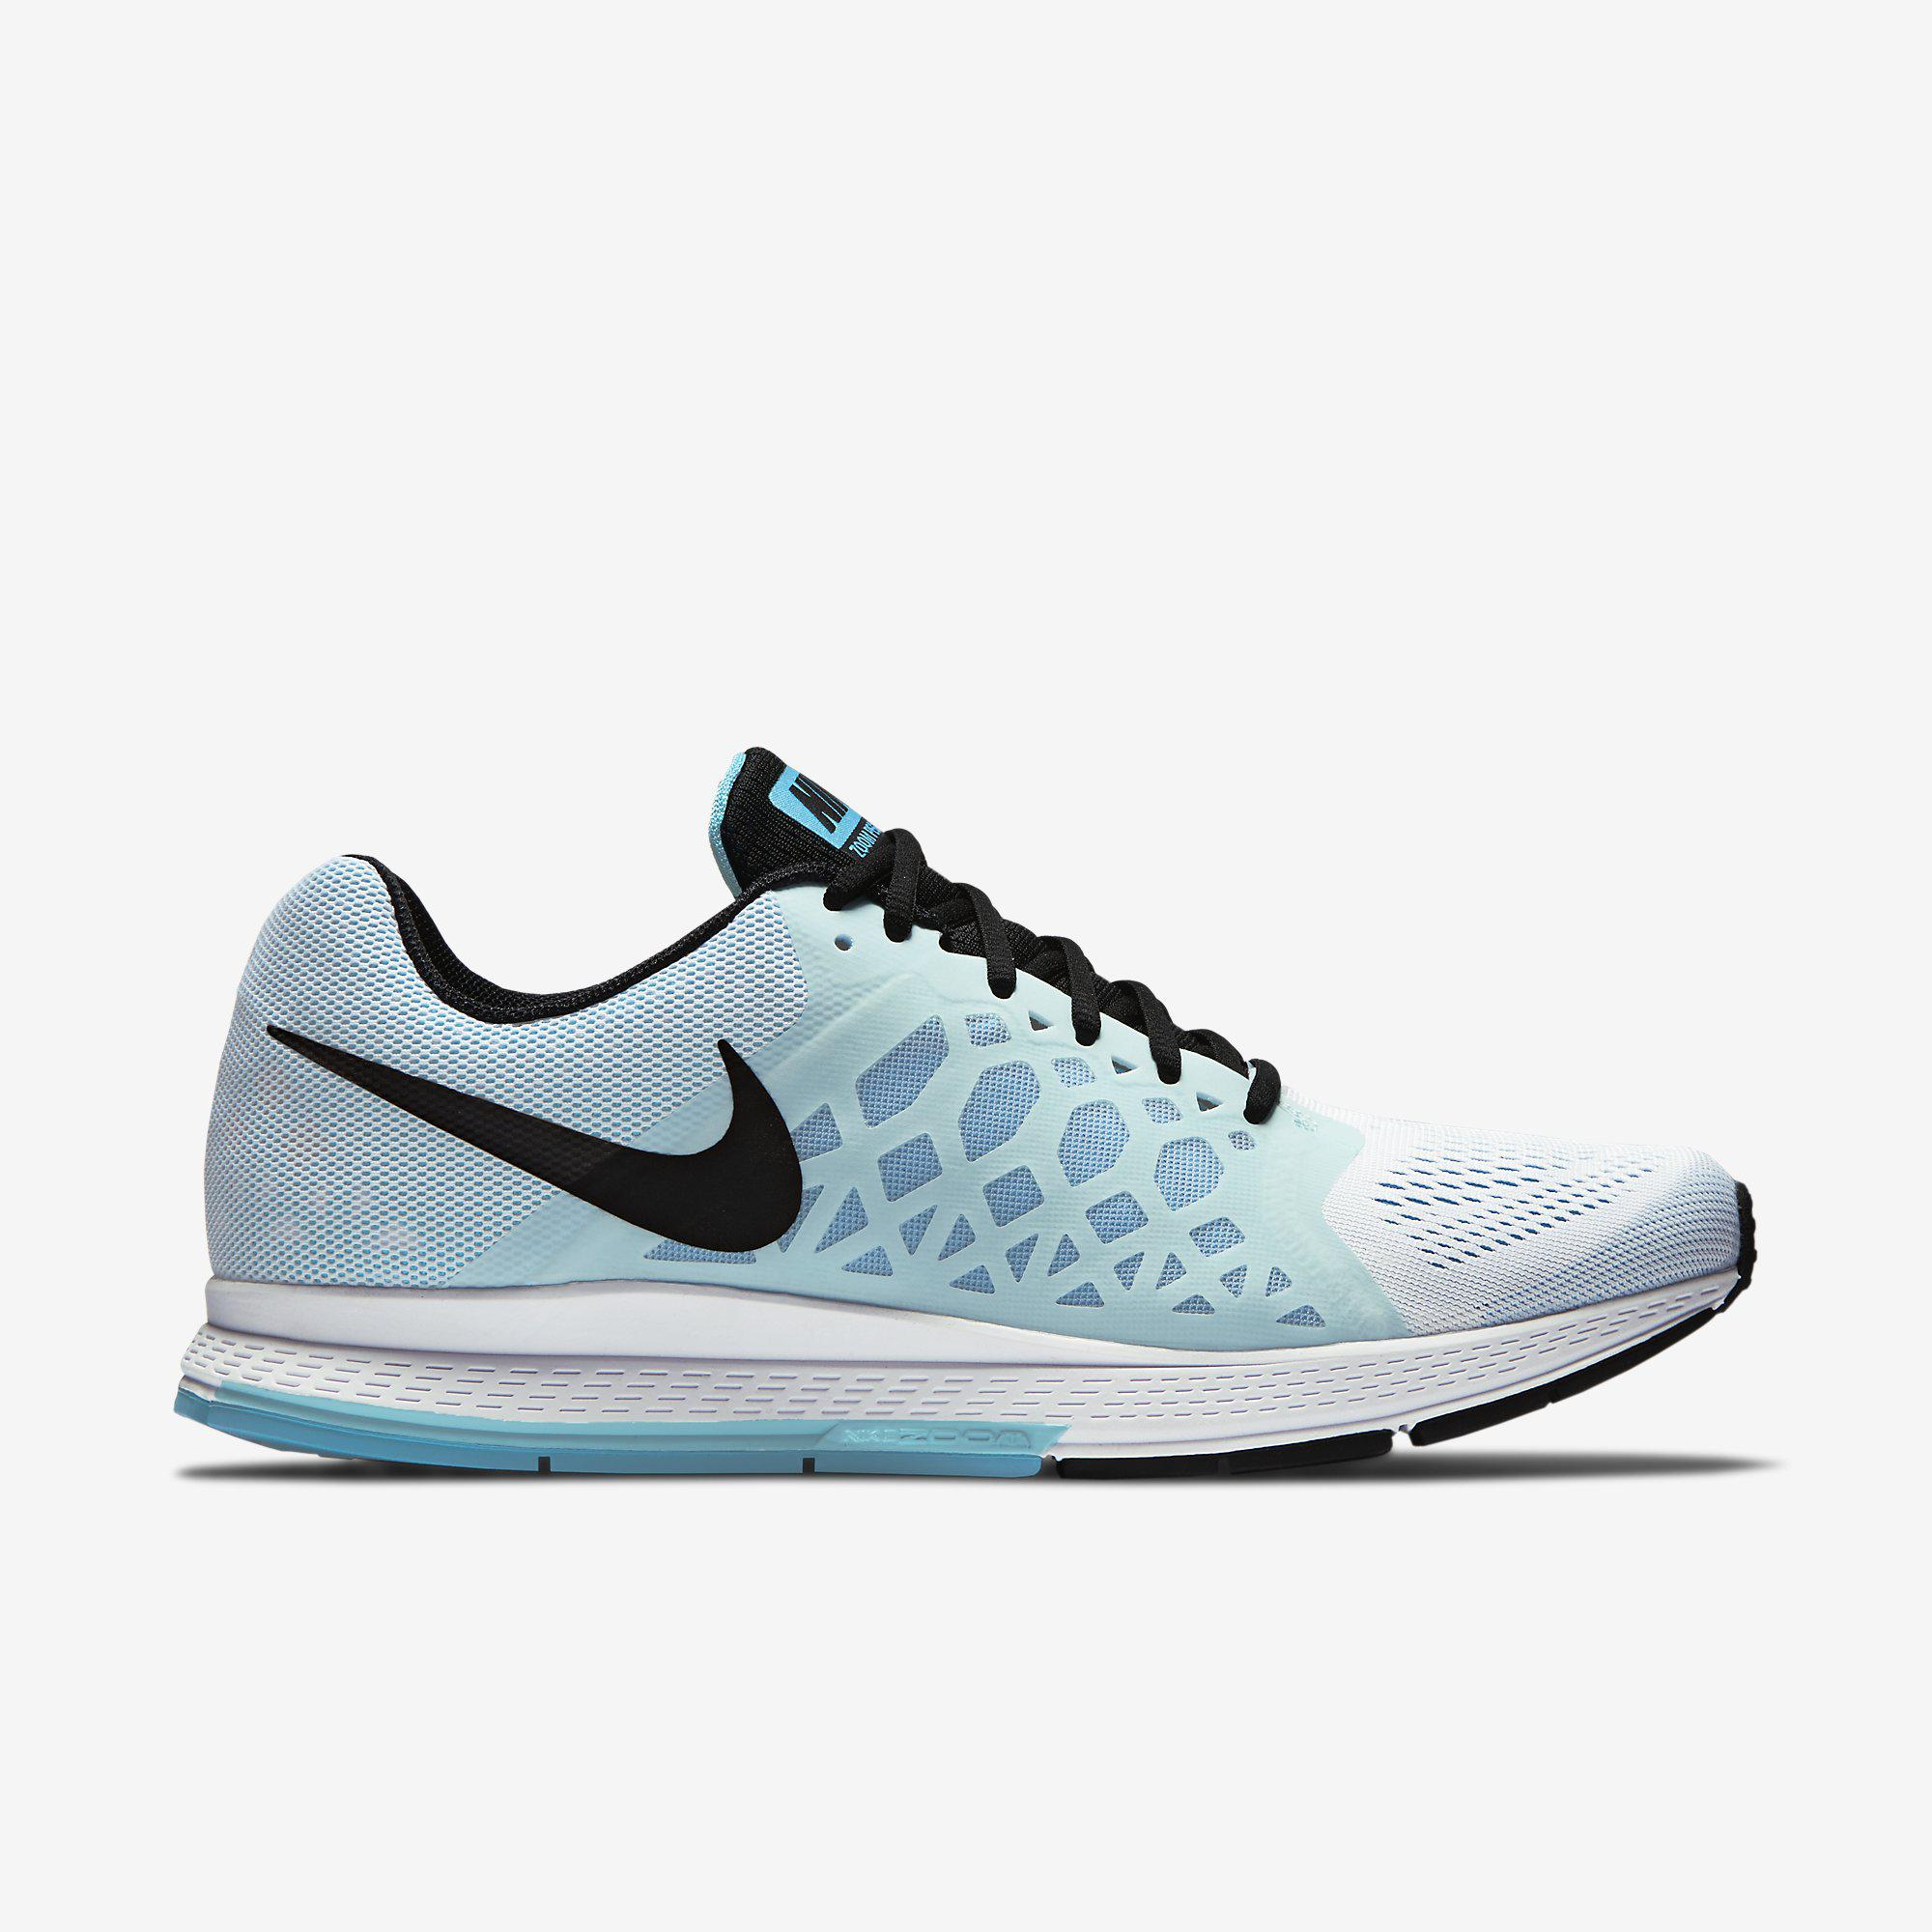 nike mens air zoom pegasus 31 running shoes white blue